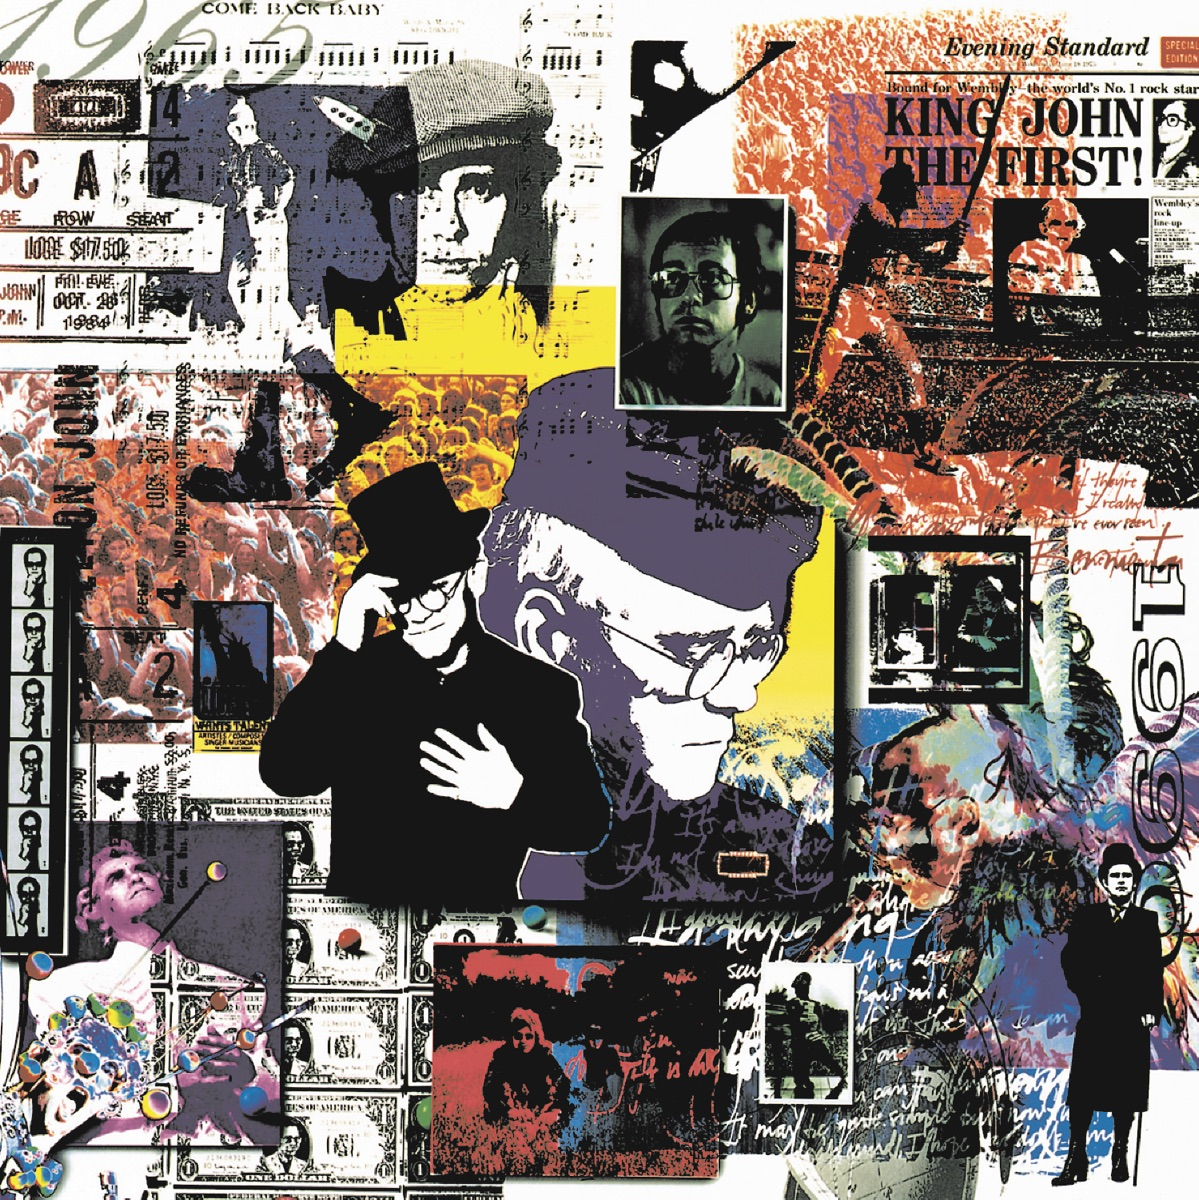 To Be Continued Box Set Elton John CD cover